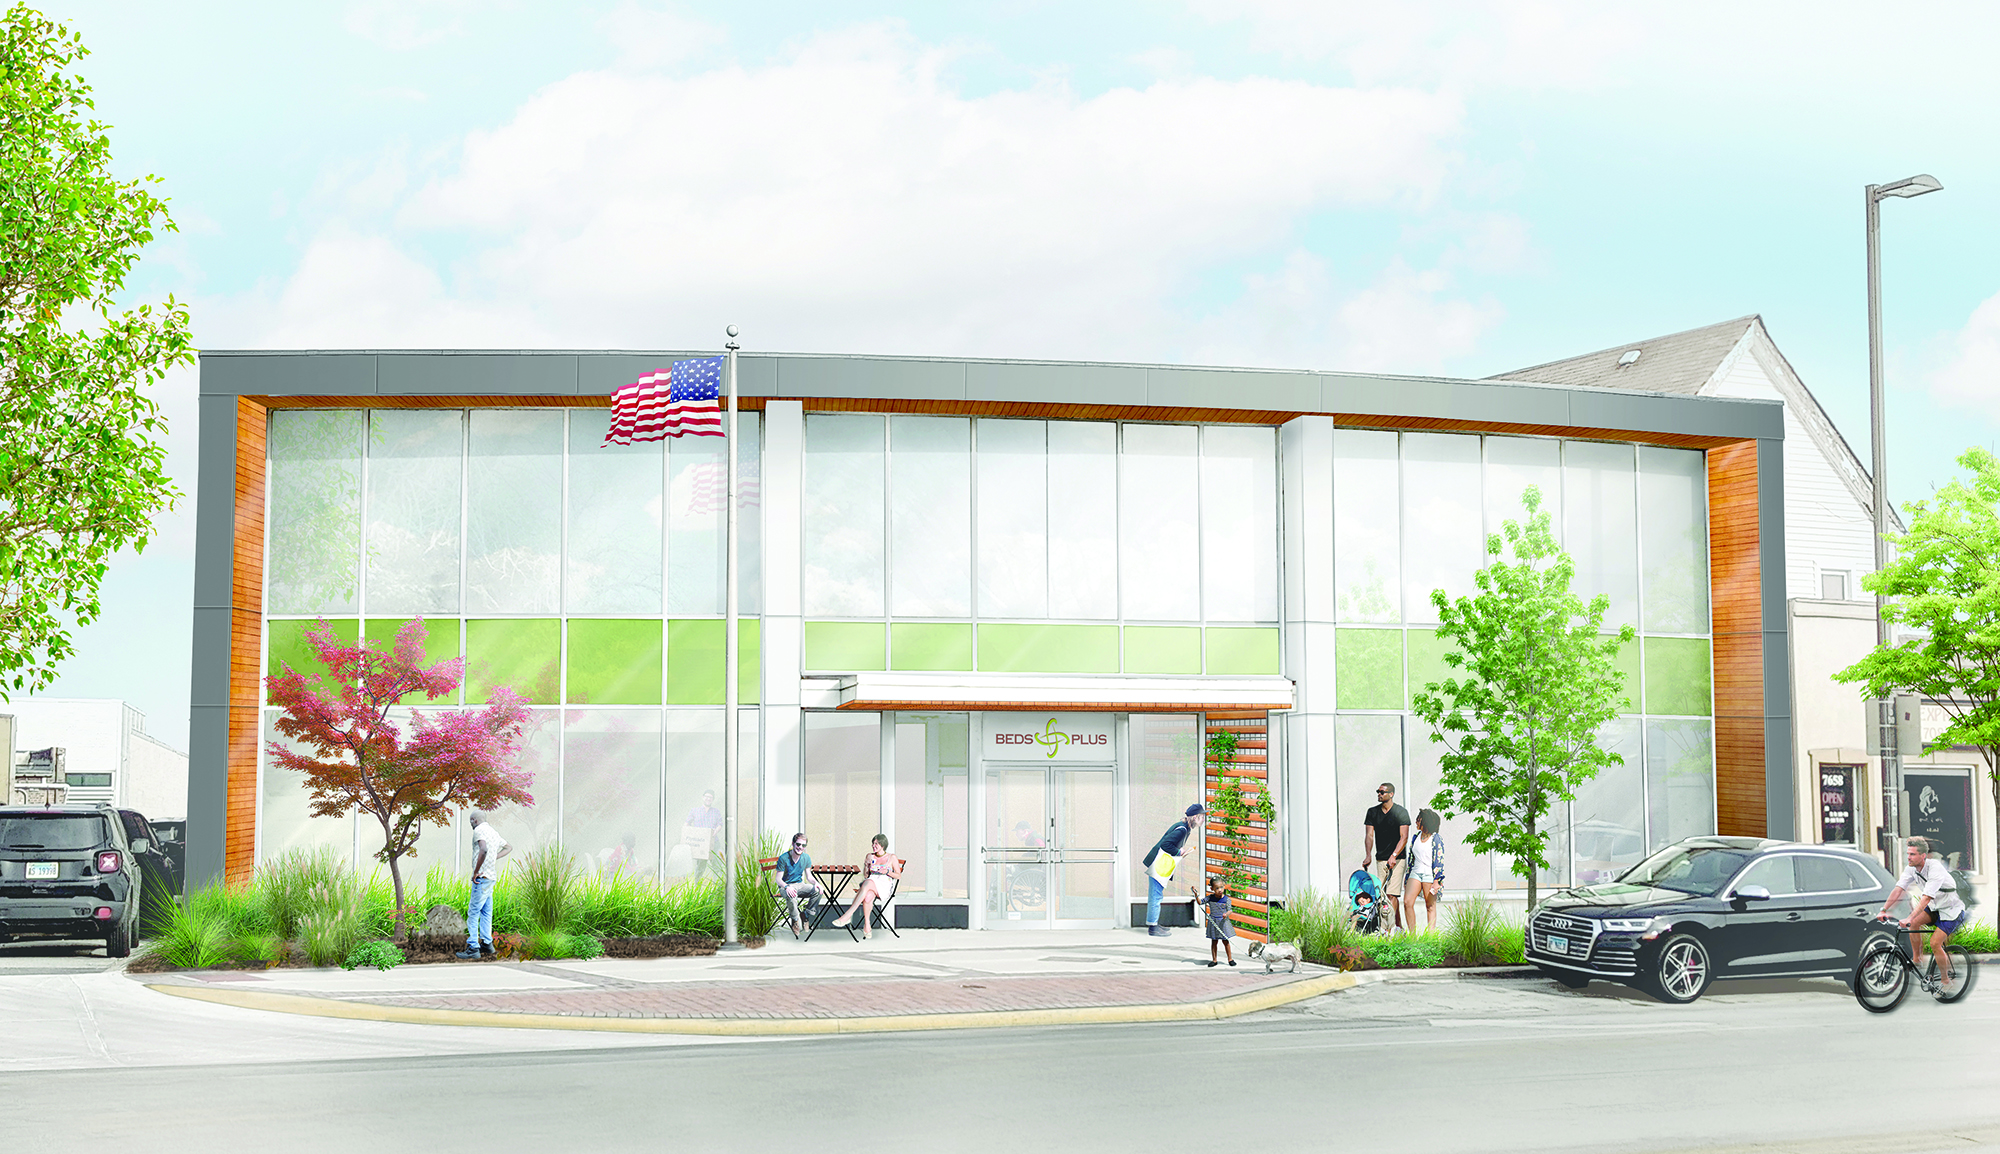 Summit Service Center plans featured in Chicago Tribune article